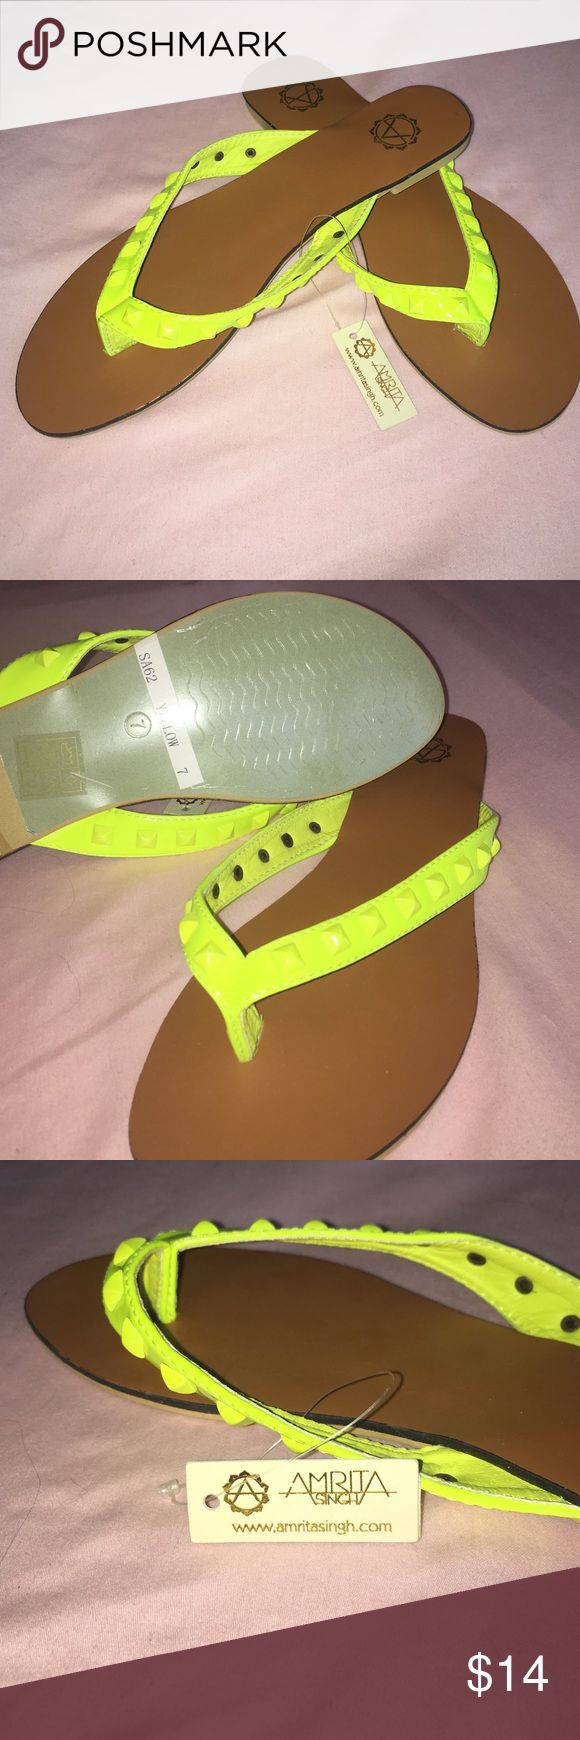 Studded beauties. Brand new. Neon yellow sandals. Step into spring and summer with these bright sandals. Brand new with tag. Studded neon yellow slip ons. Amrita Singh Shoes Sandals